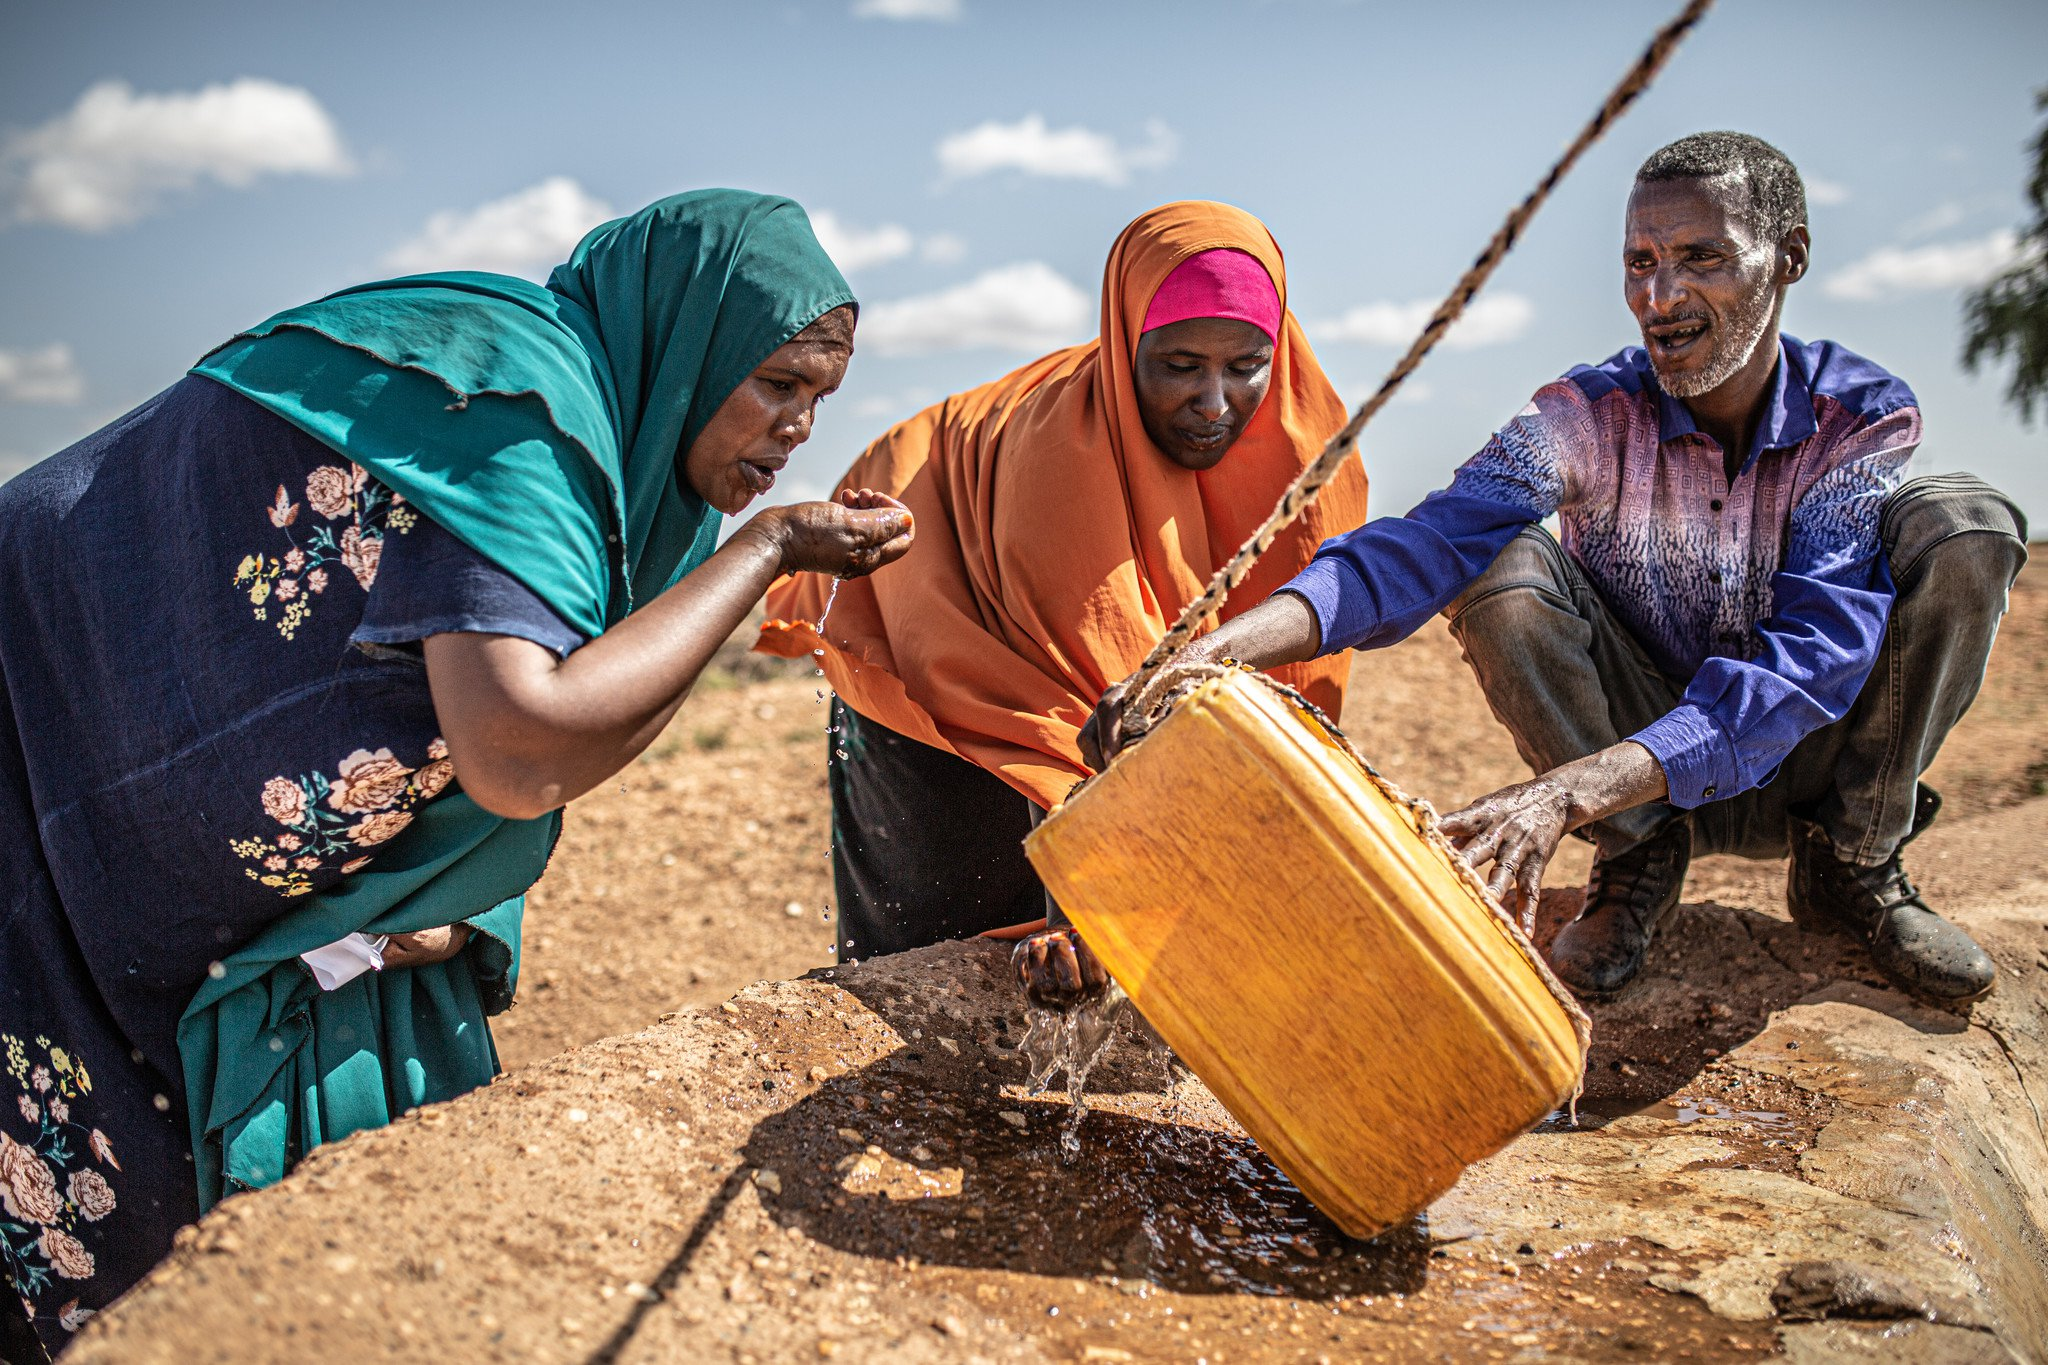 Hoden Abdi Iwal (left) and her neighbors get water from a reservoir near her home.